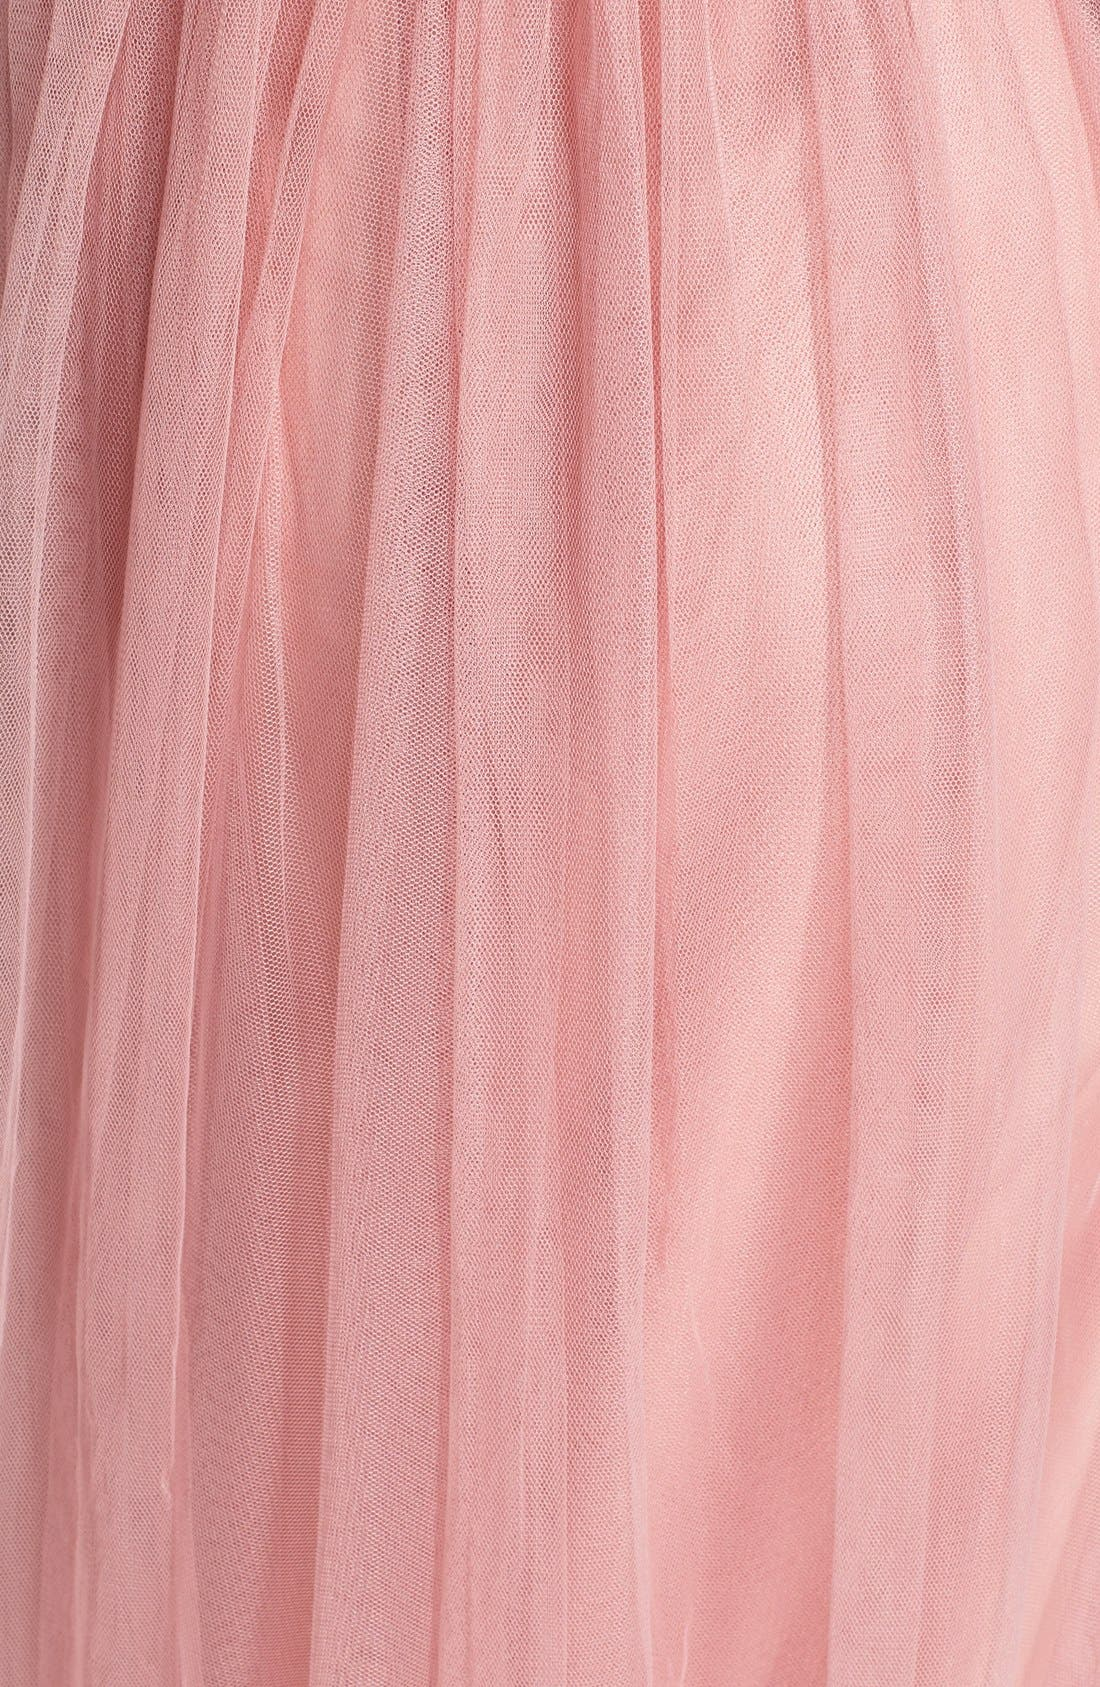 Annabelle Convertible Tulle Column Dress,                             Alternate thumbnail 188, color,